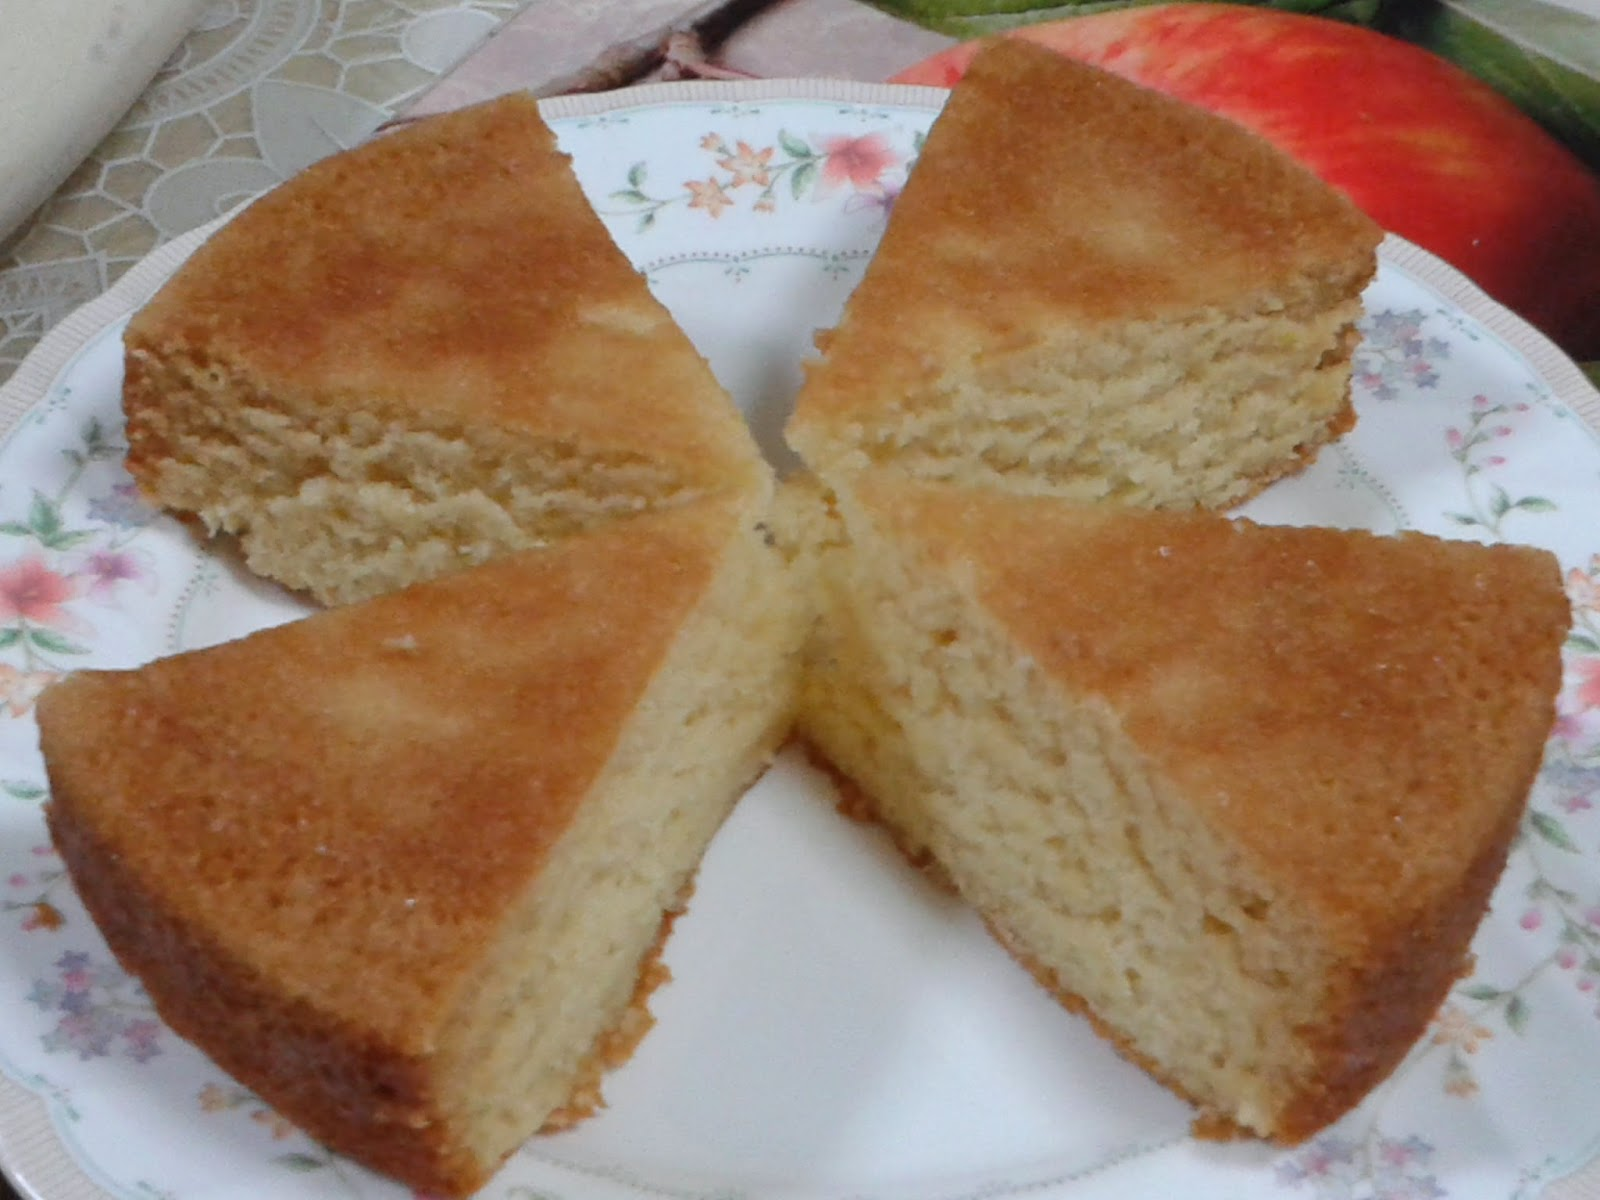 Cake Recipes In Microwave Oven With Convection: Malai Cake (Convection Mode In Microwave)